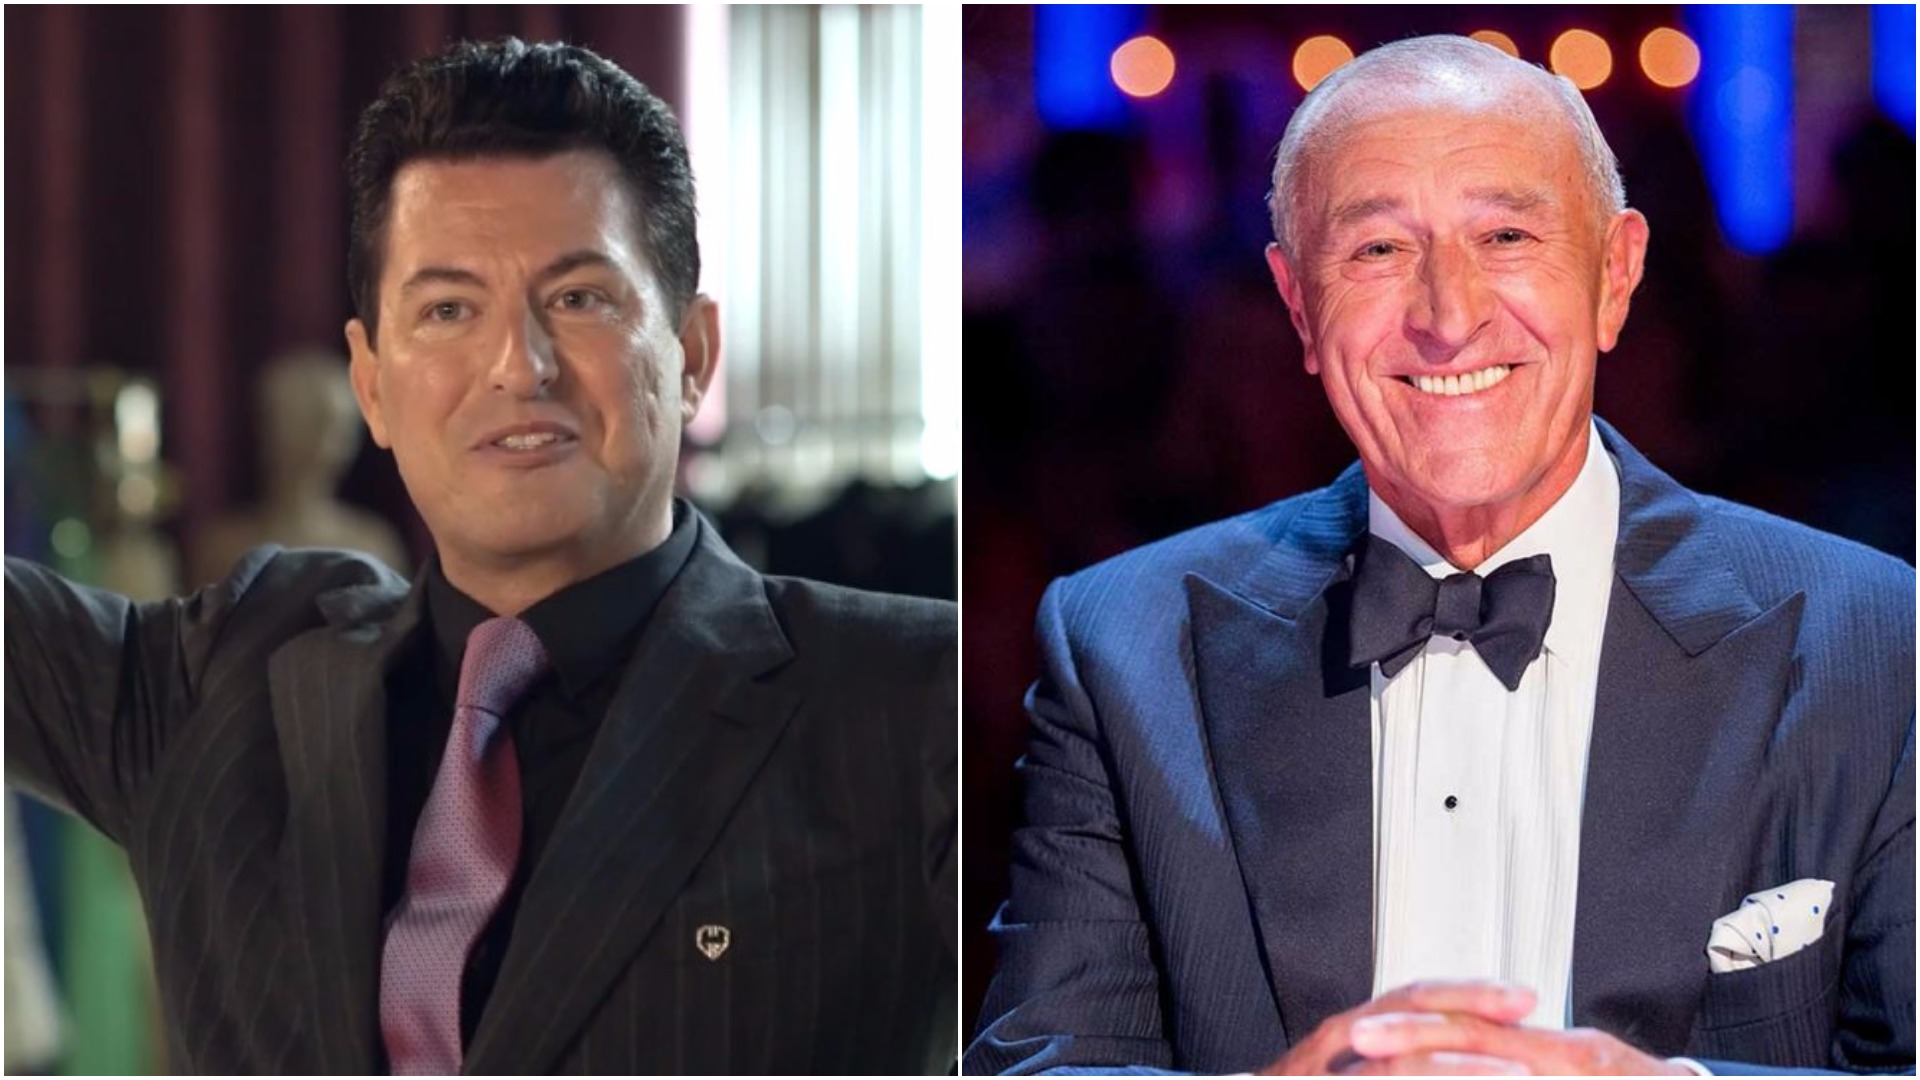 Len Goodman's old mate Gary Edwards is now favourite to replace him as the Strictly Come Dancing head judge